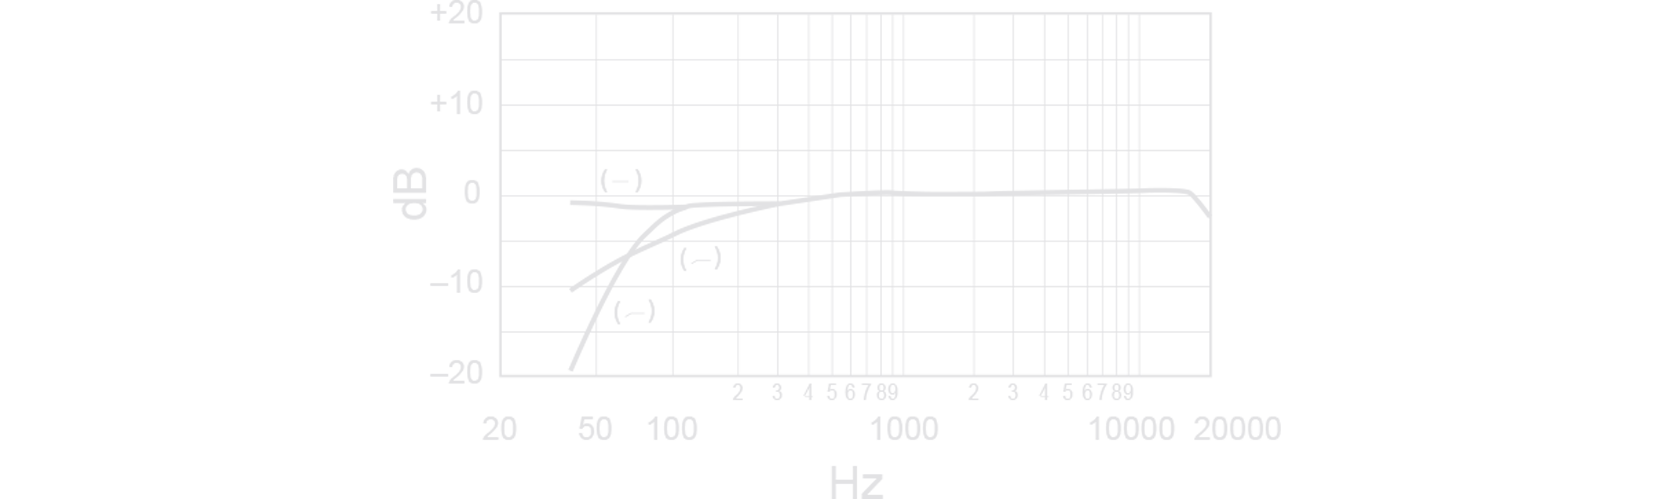 Shure SM81 Condenser Instrument Microphone Frequency Response Curve Image